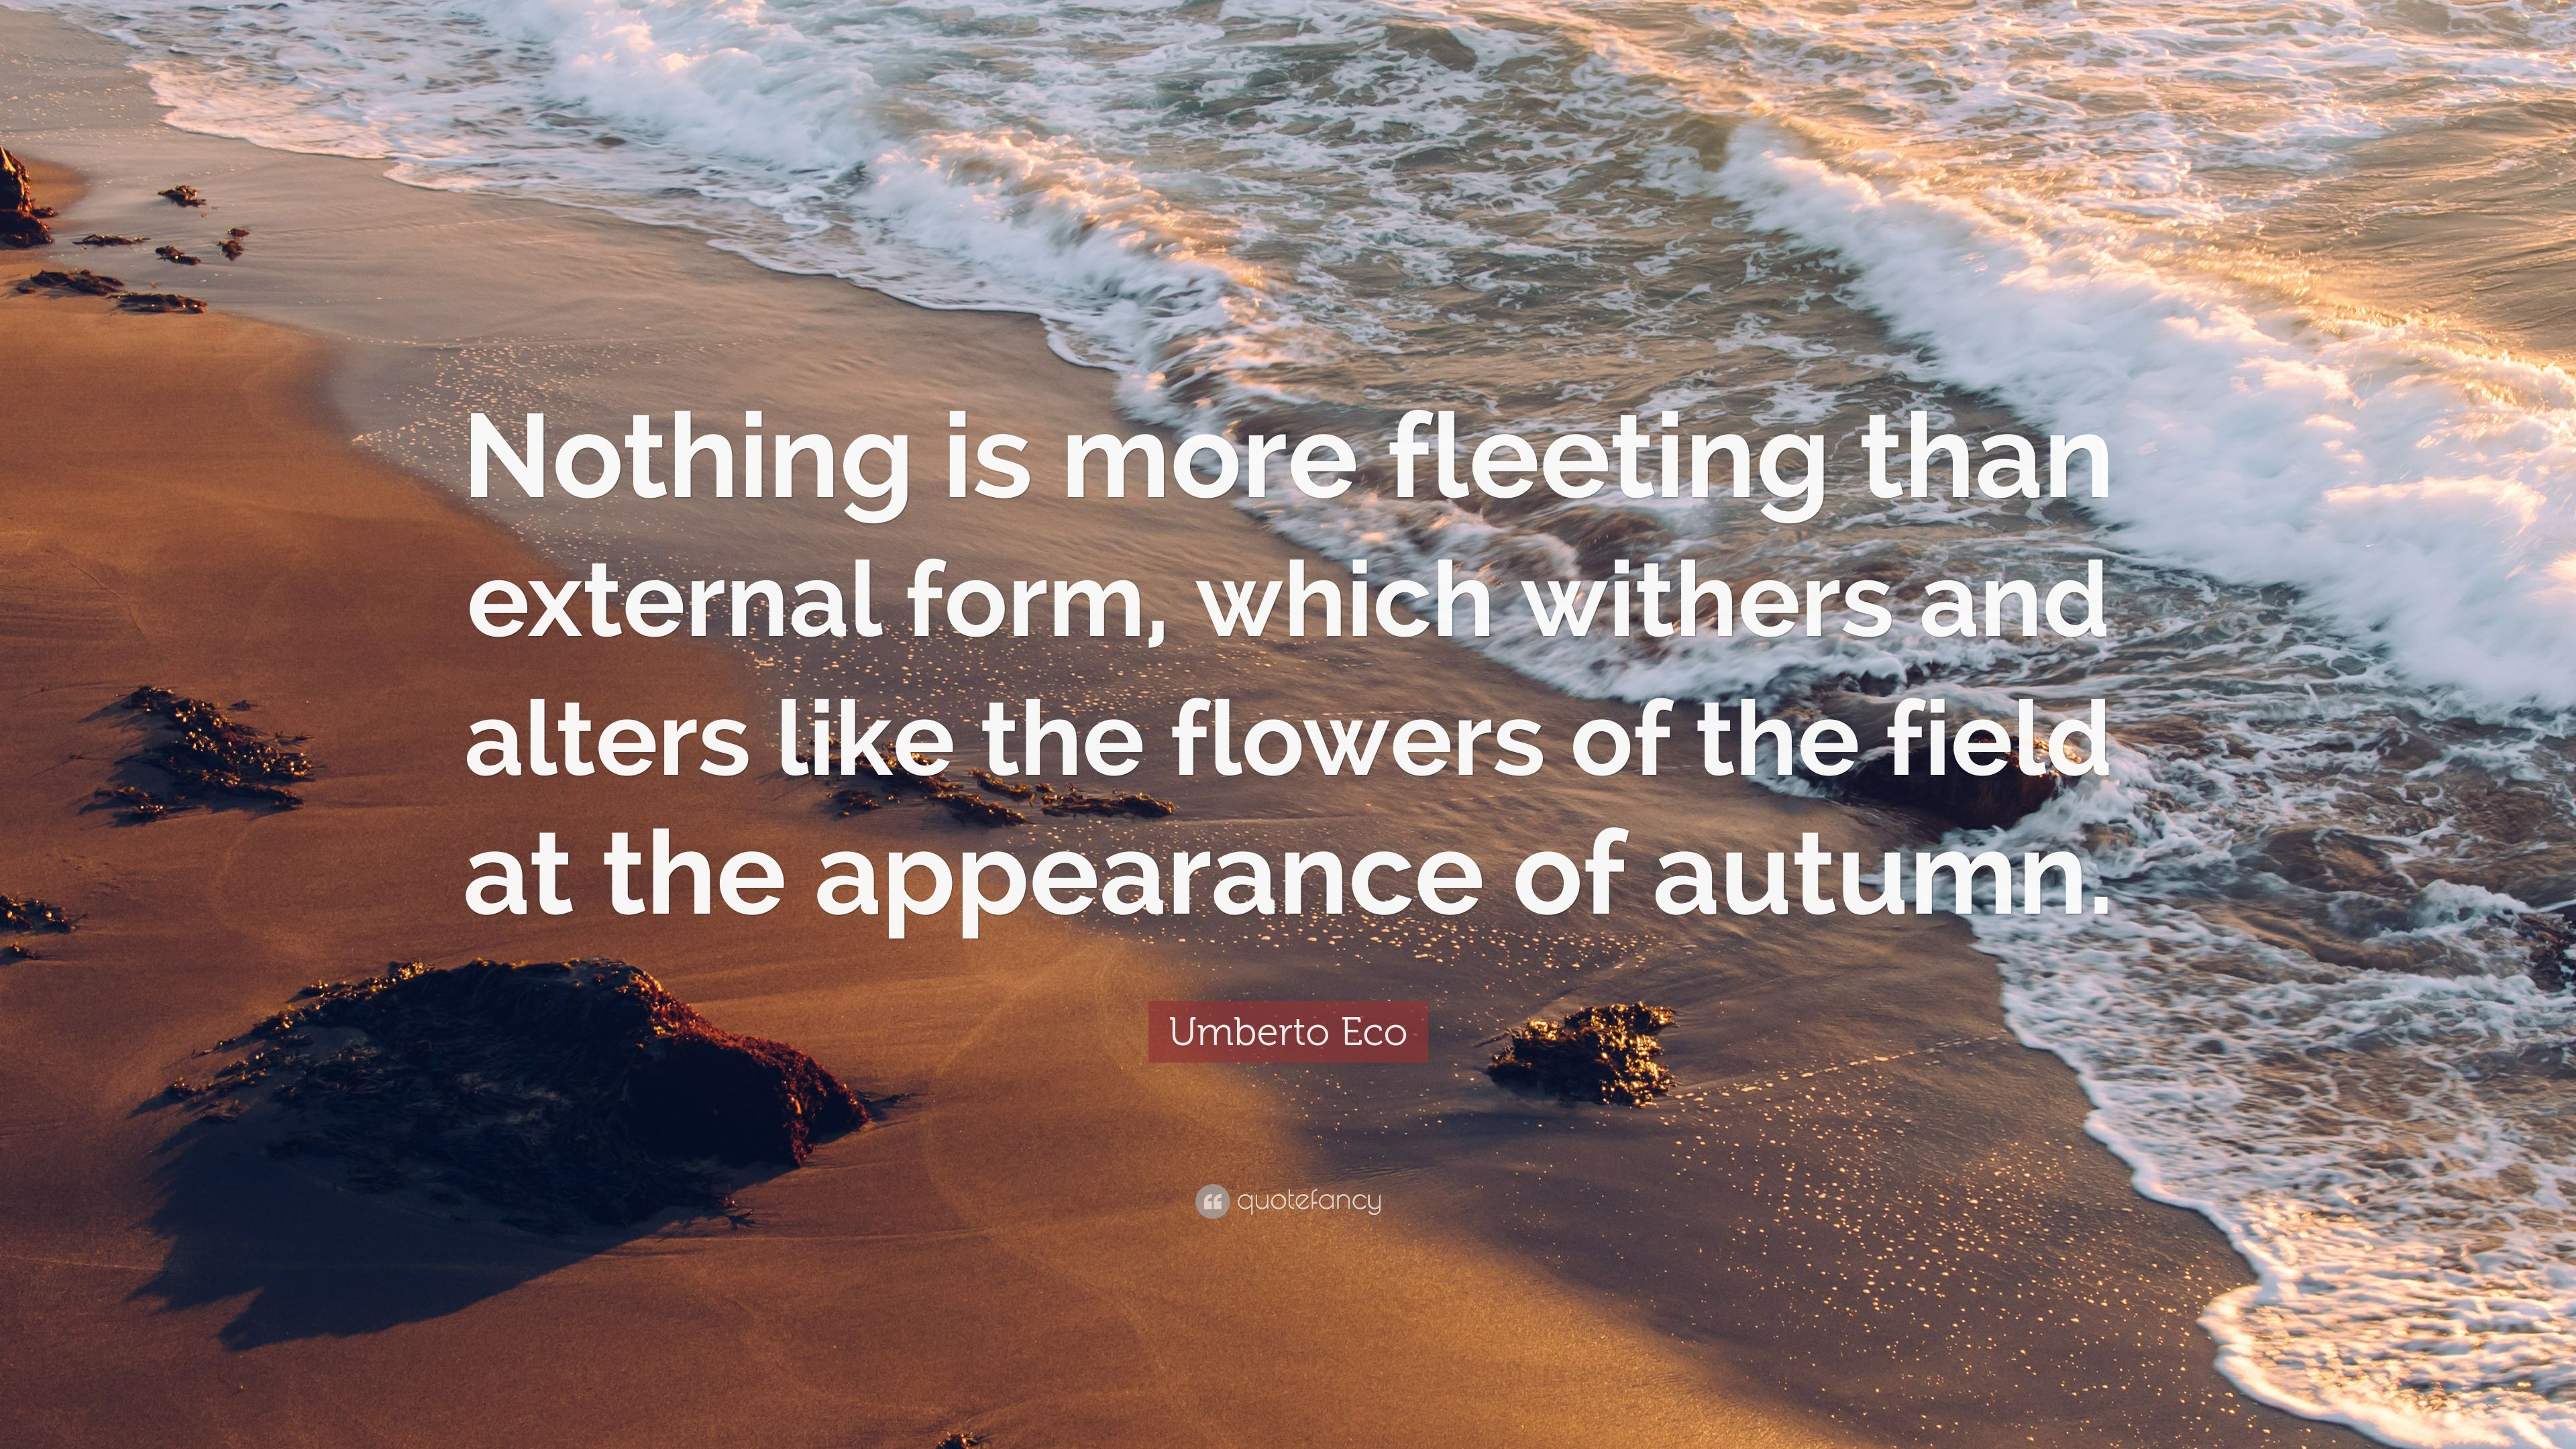 Marvelous Umberto Eco Quote: U201cNothing Is More Fleeting Than External Form, Which  Withers And